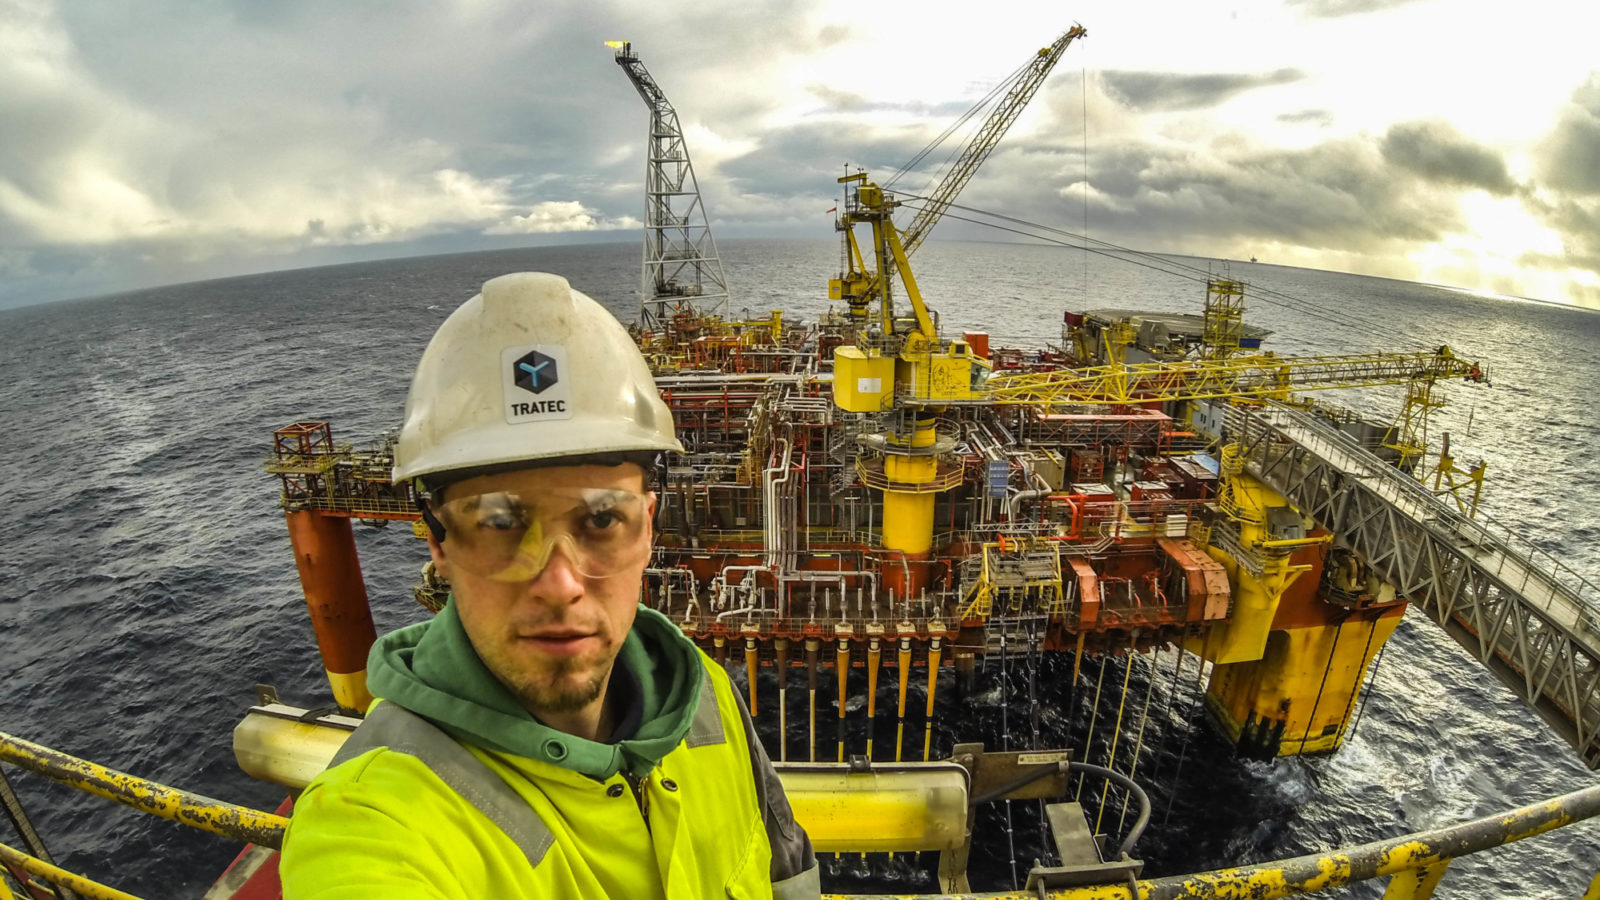 ESD control system for Transocean Searcher